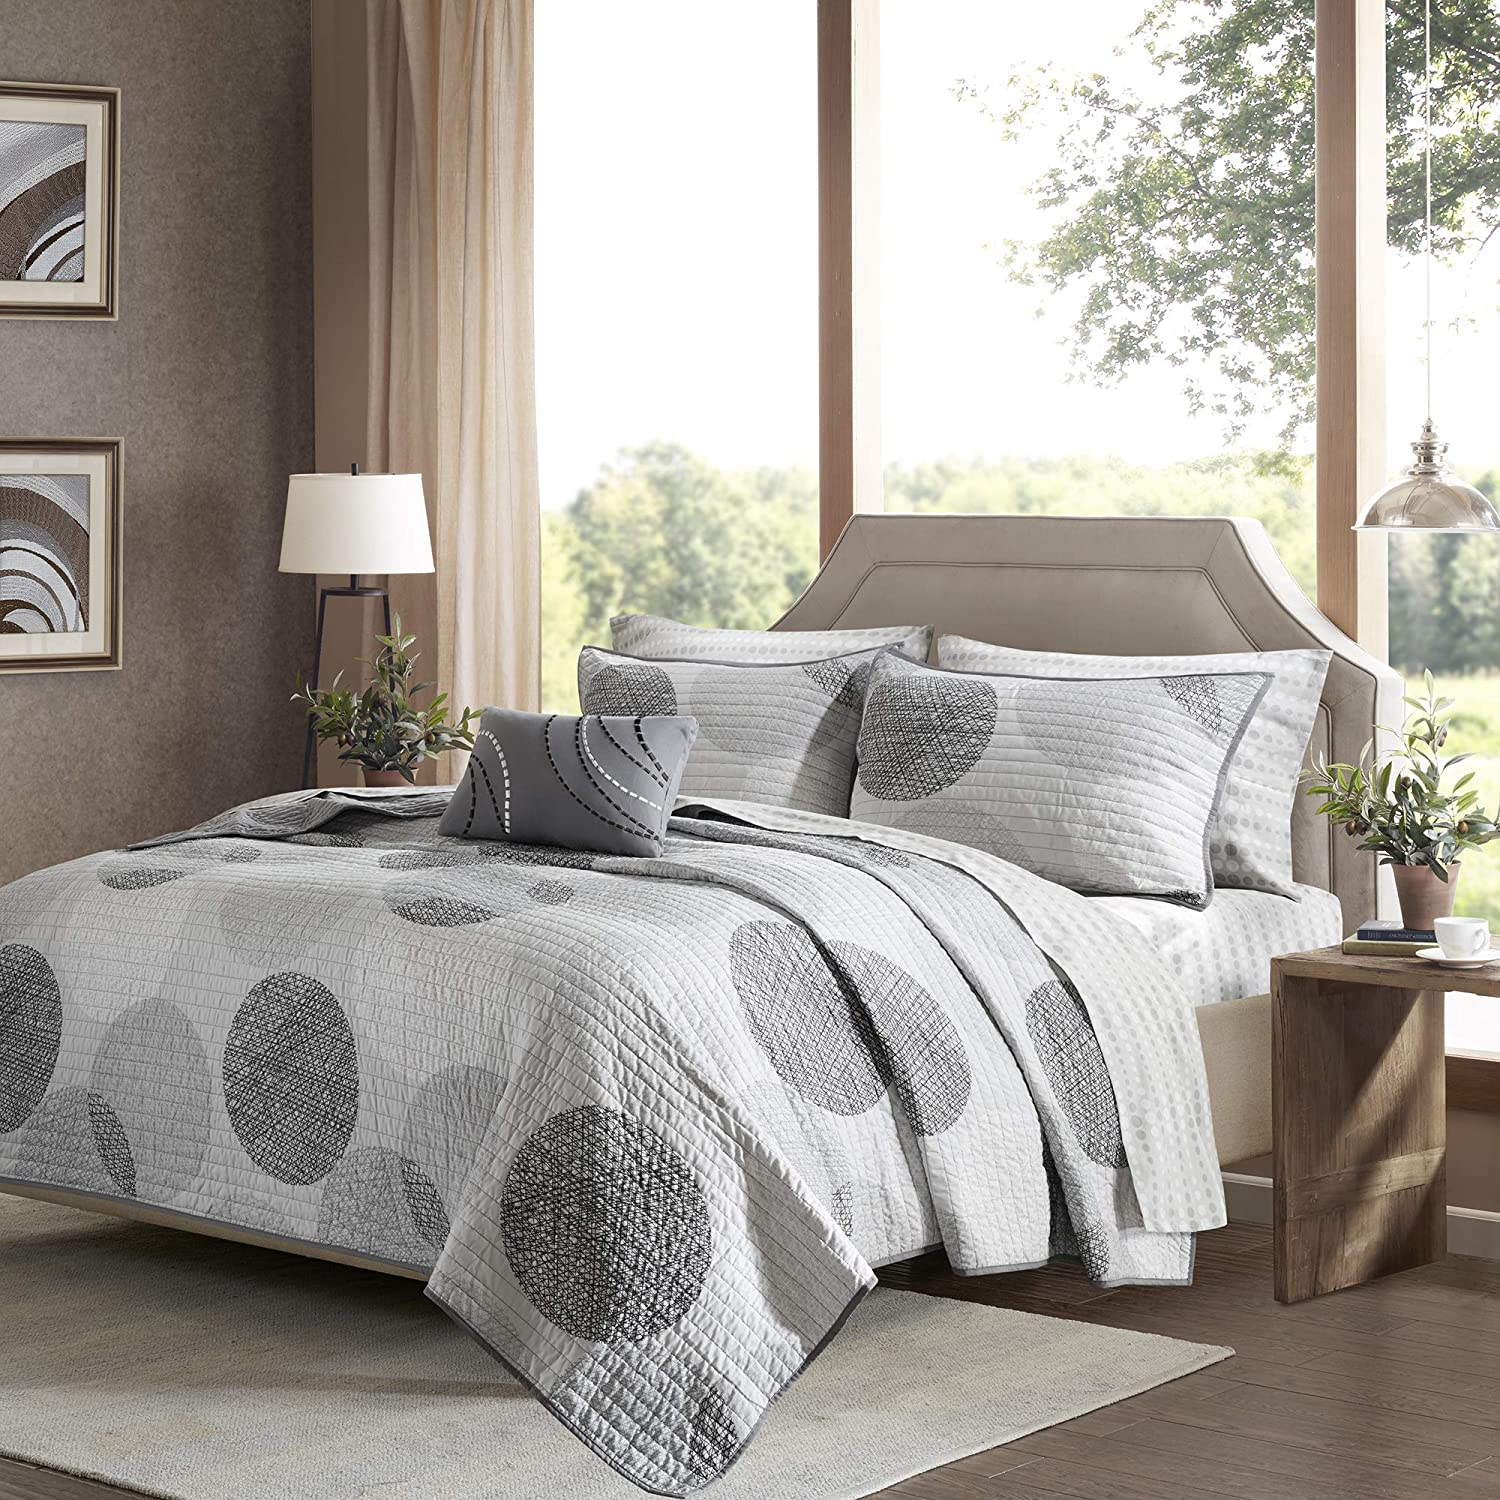 Madison Park Essentials Knowles Queen Size Quilt Bedding Set - Grey, Geometric Dots – 8 Piece Bedding Quilt Coverlets – Ultra Soft Microfiber with Cotton Sheets Bed Quilts Quilted Coverlet